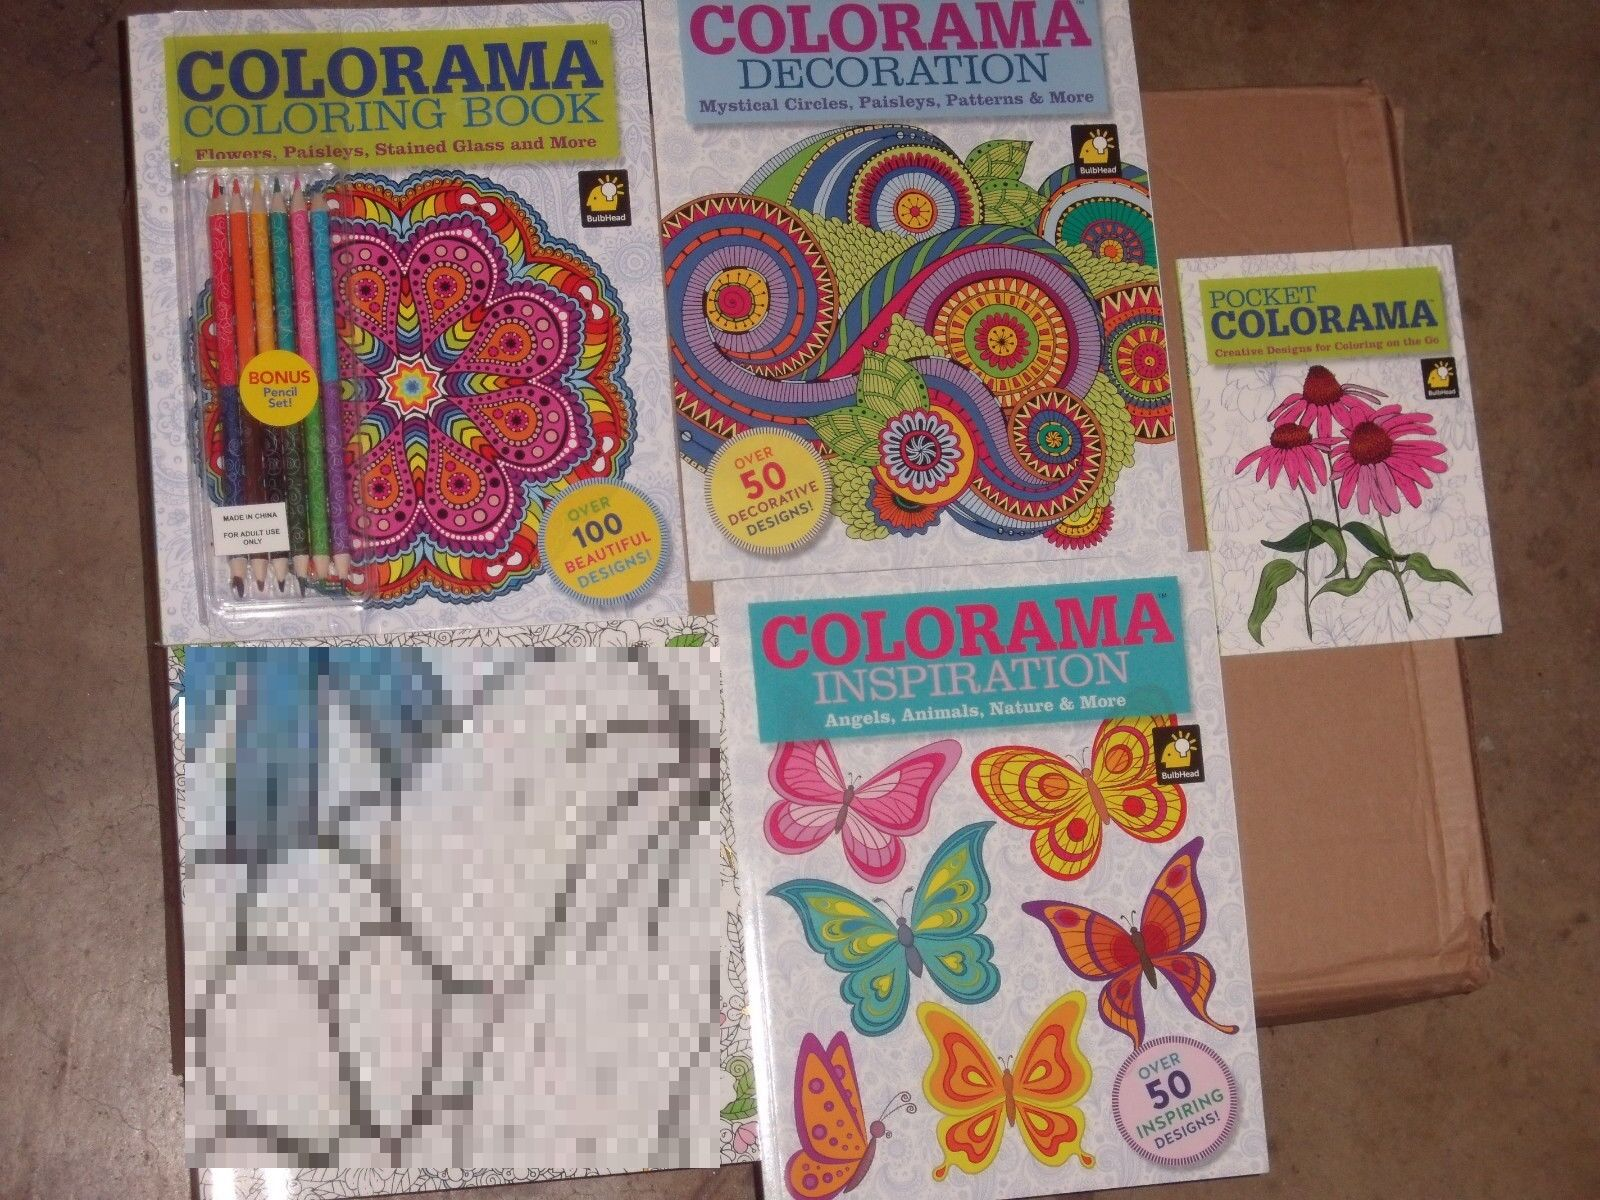 Colorama Adult Coloring Book Decoration Inspiration 12 Pencils Gift 1 Of 3Only 5 Available See More